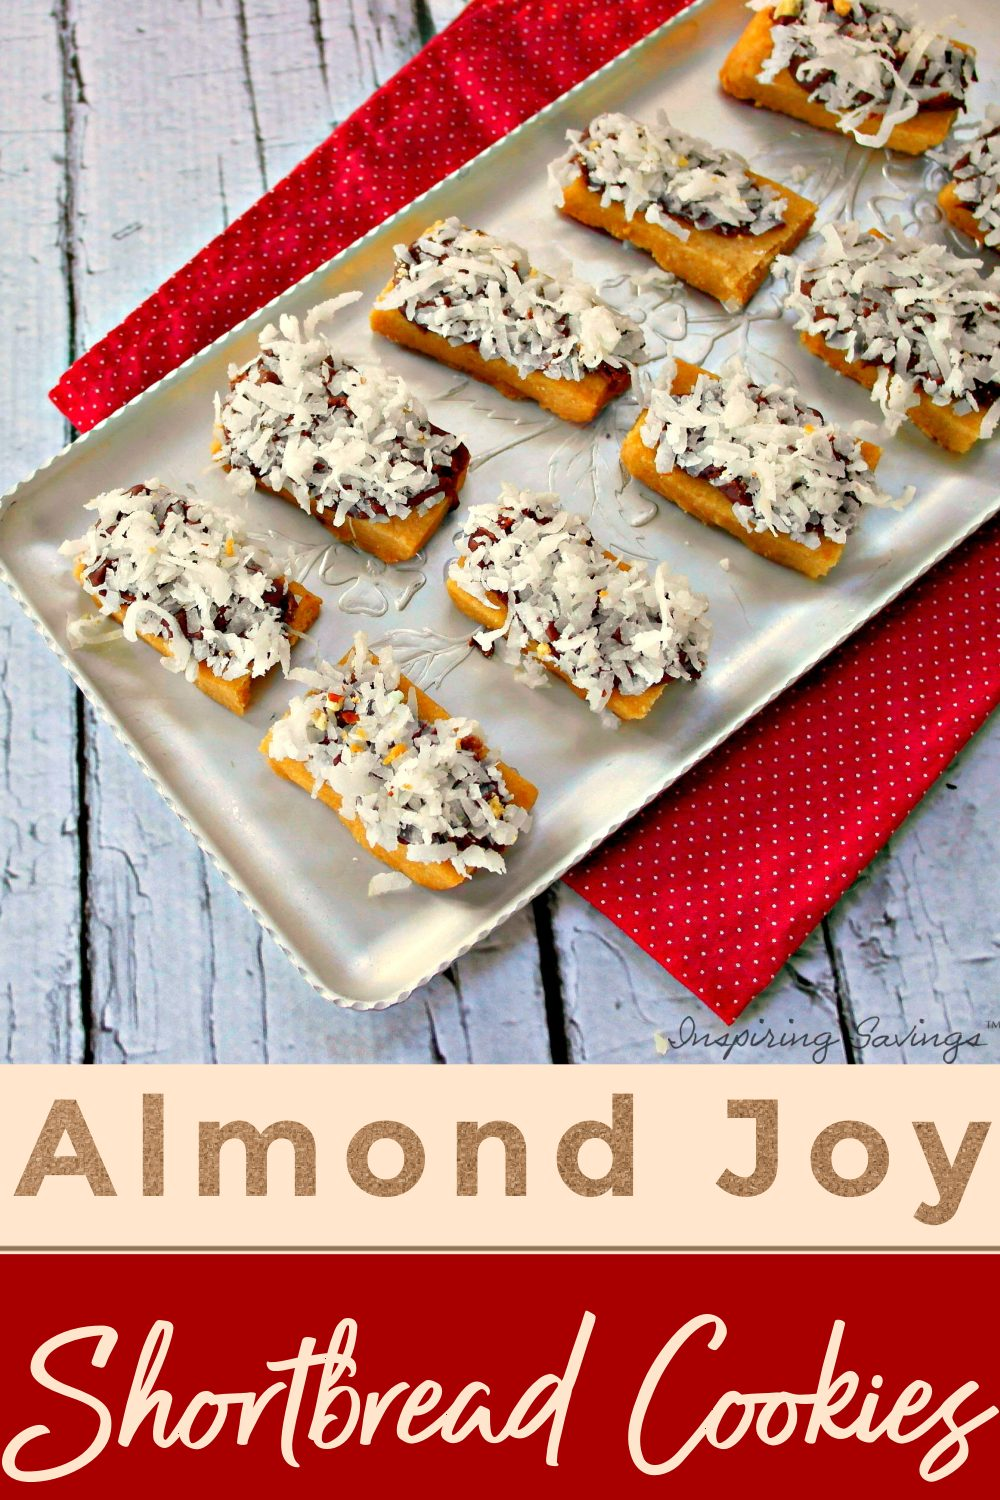 These Almond Joy shortbread cookies contain delicious coconut, flaked almond, and melted chocolate.  Makes these for your next get together or cookie exchange.